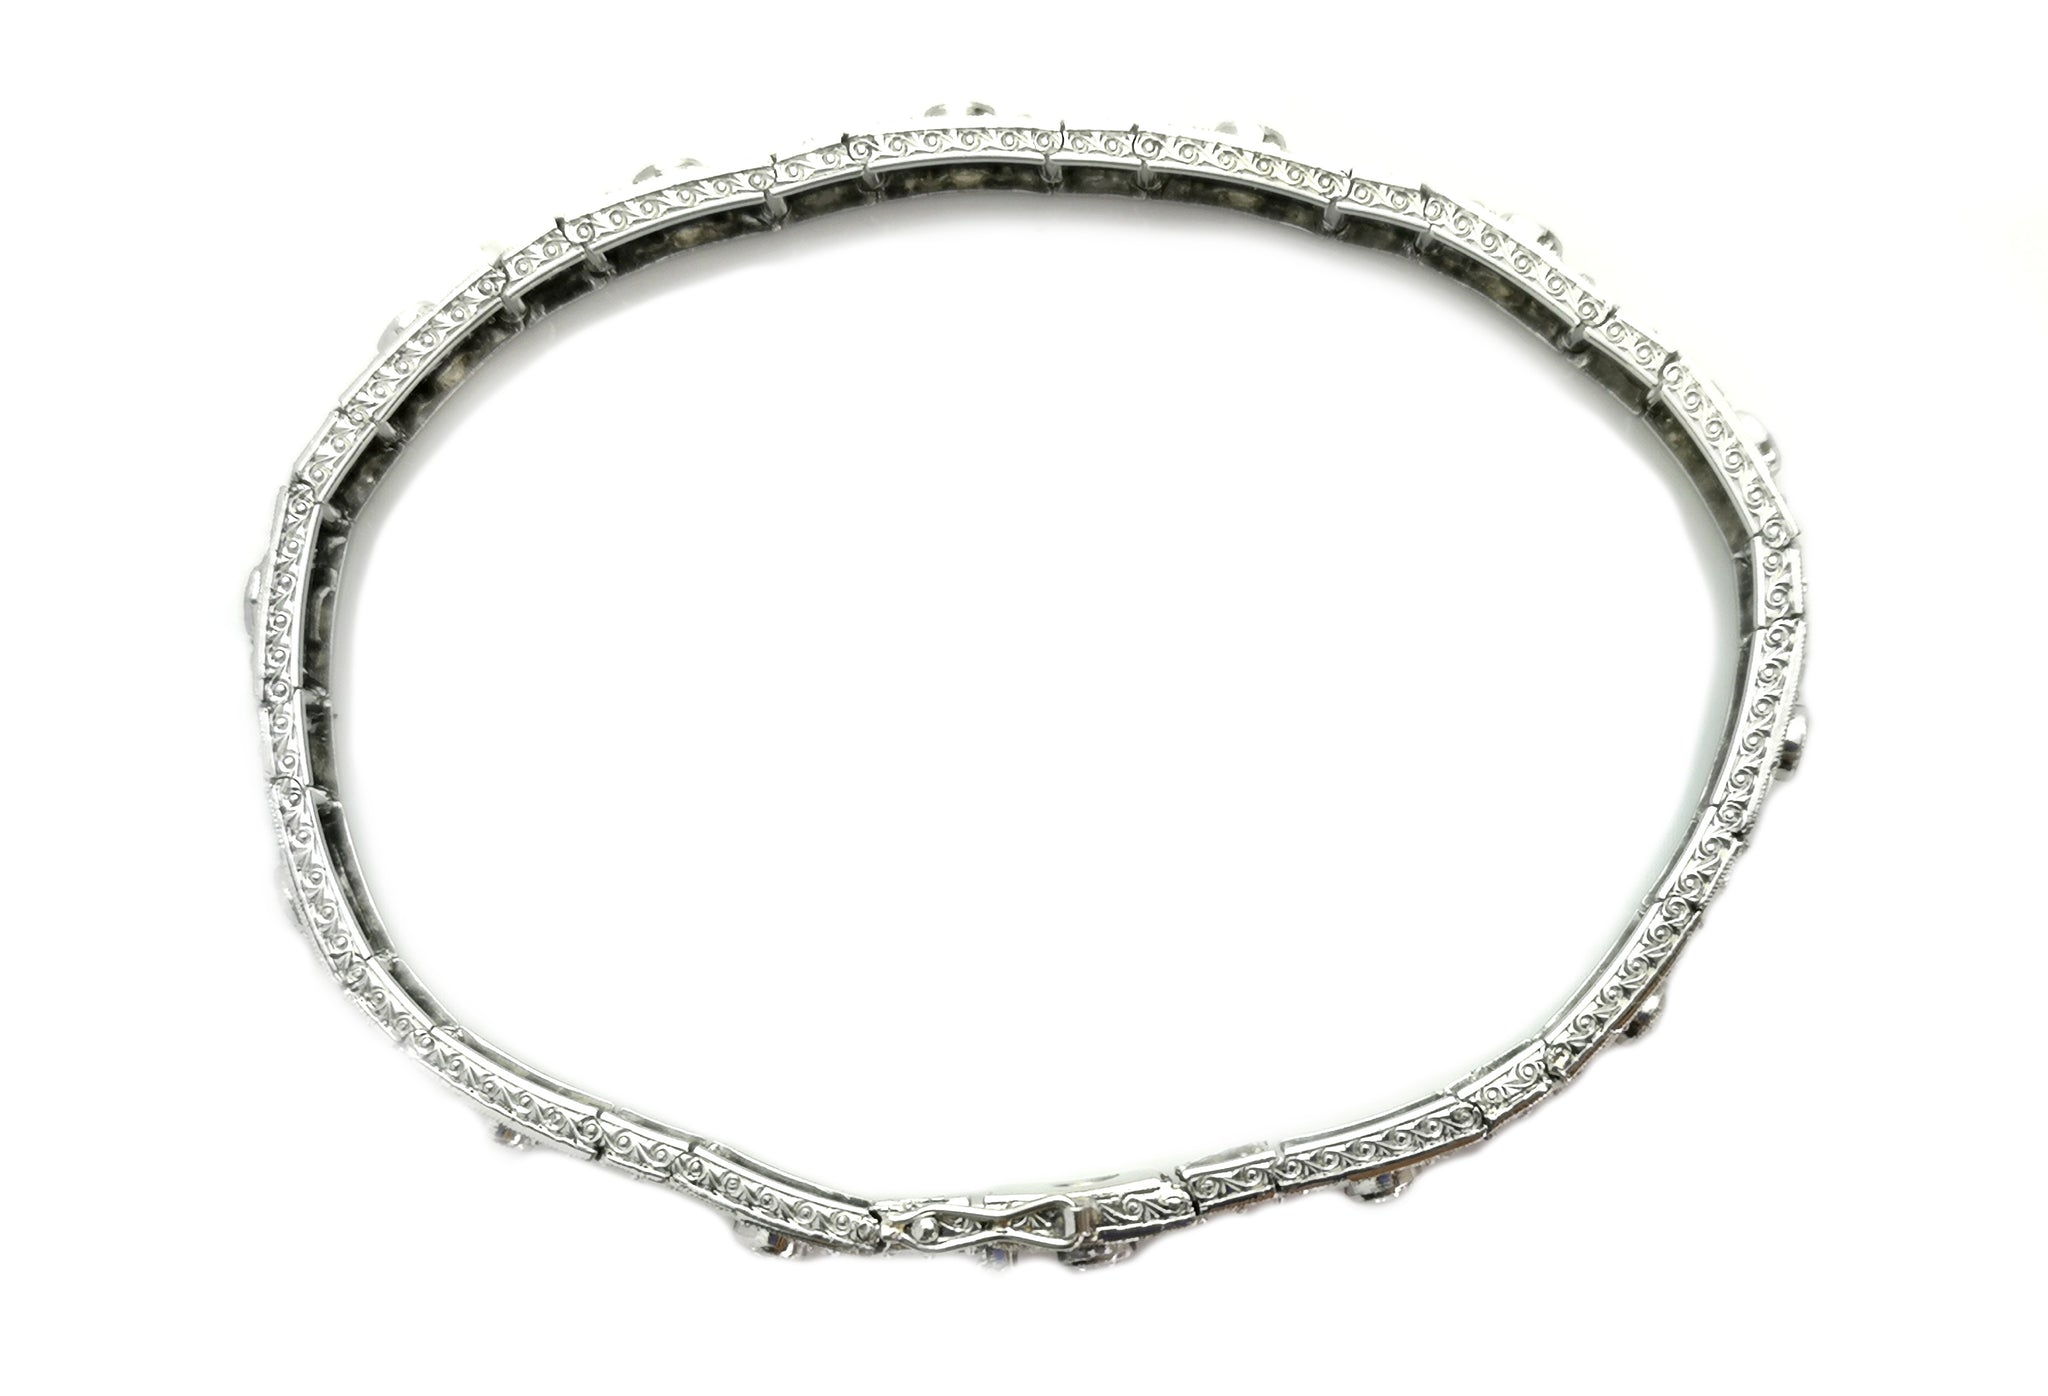 French Art Deco 2tcw Old Cut Diamond Bracelet 7in